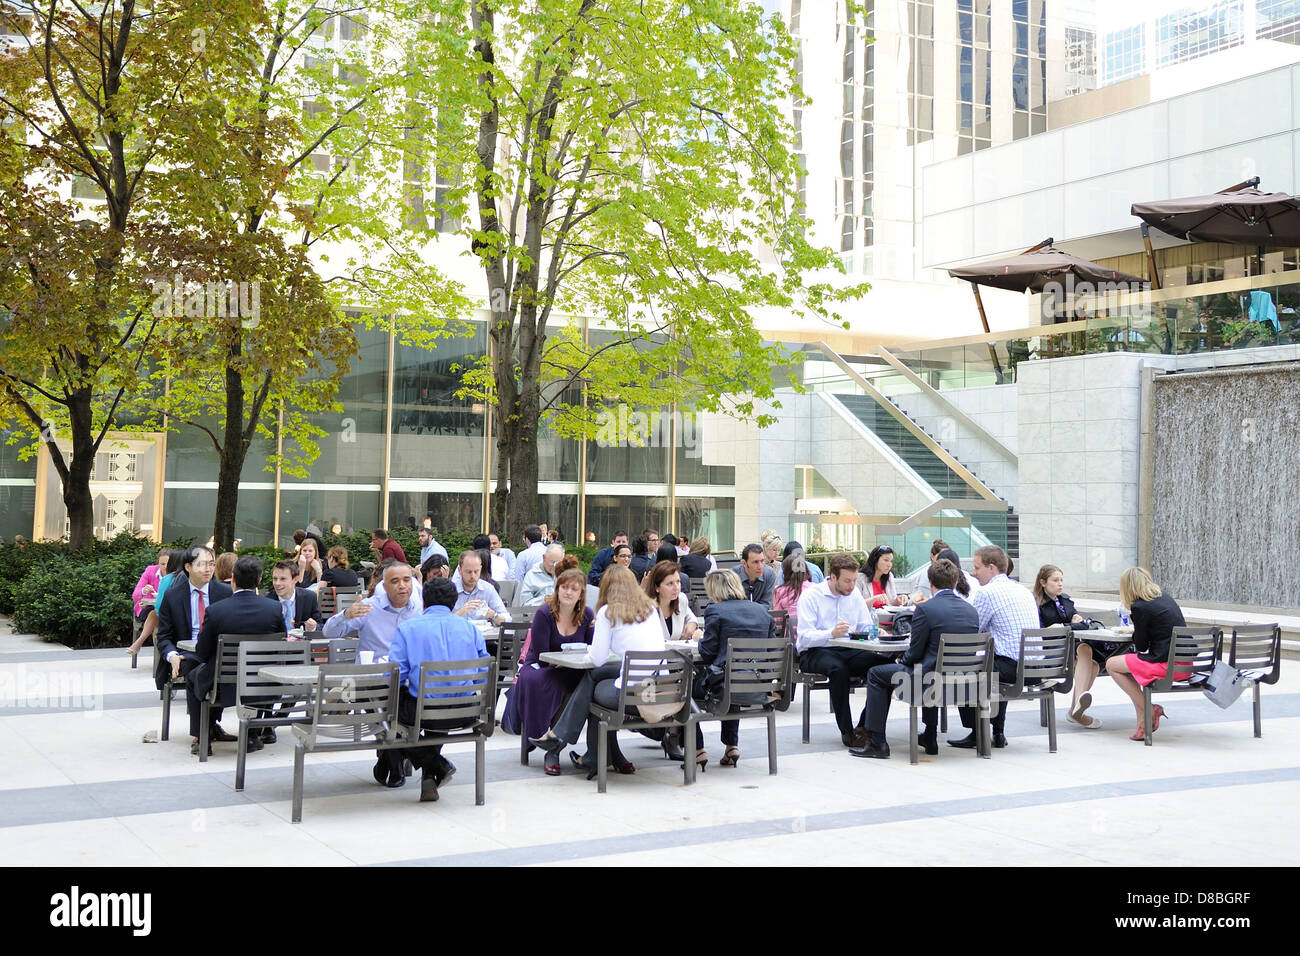 Office Workers Taking Lunch Break At An Outdoor Park Setup With Tables And  Chairs Resembling A